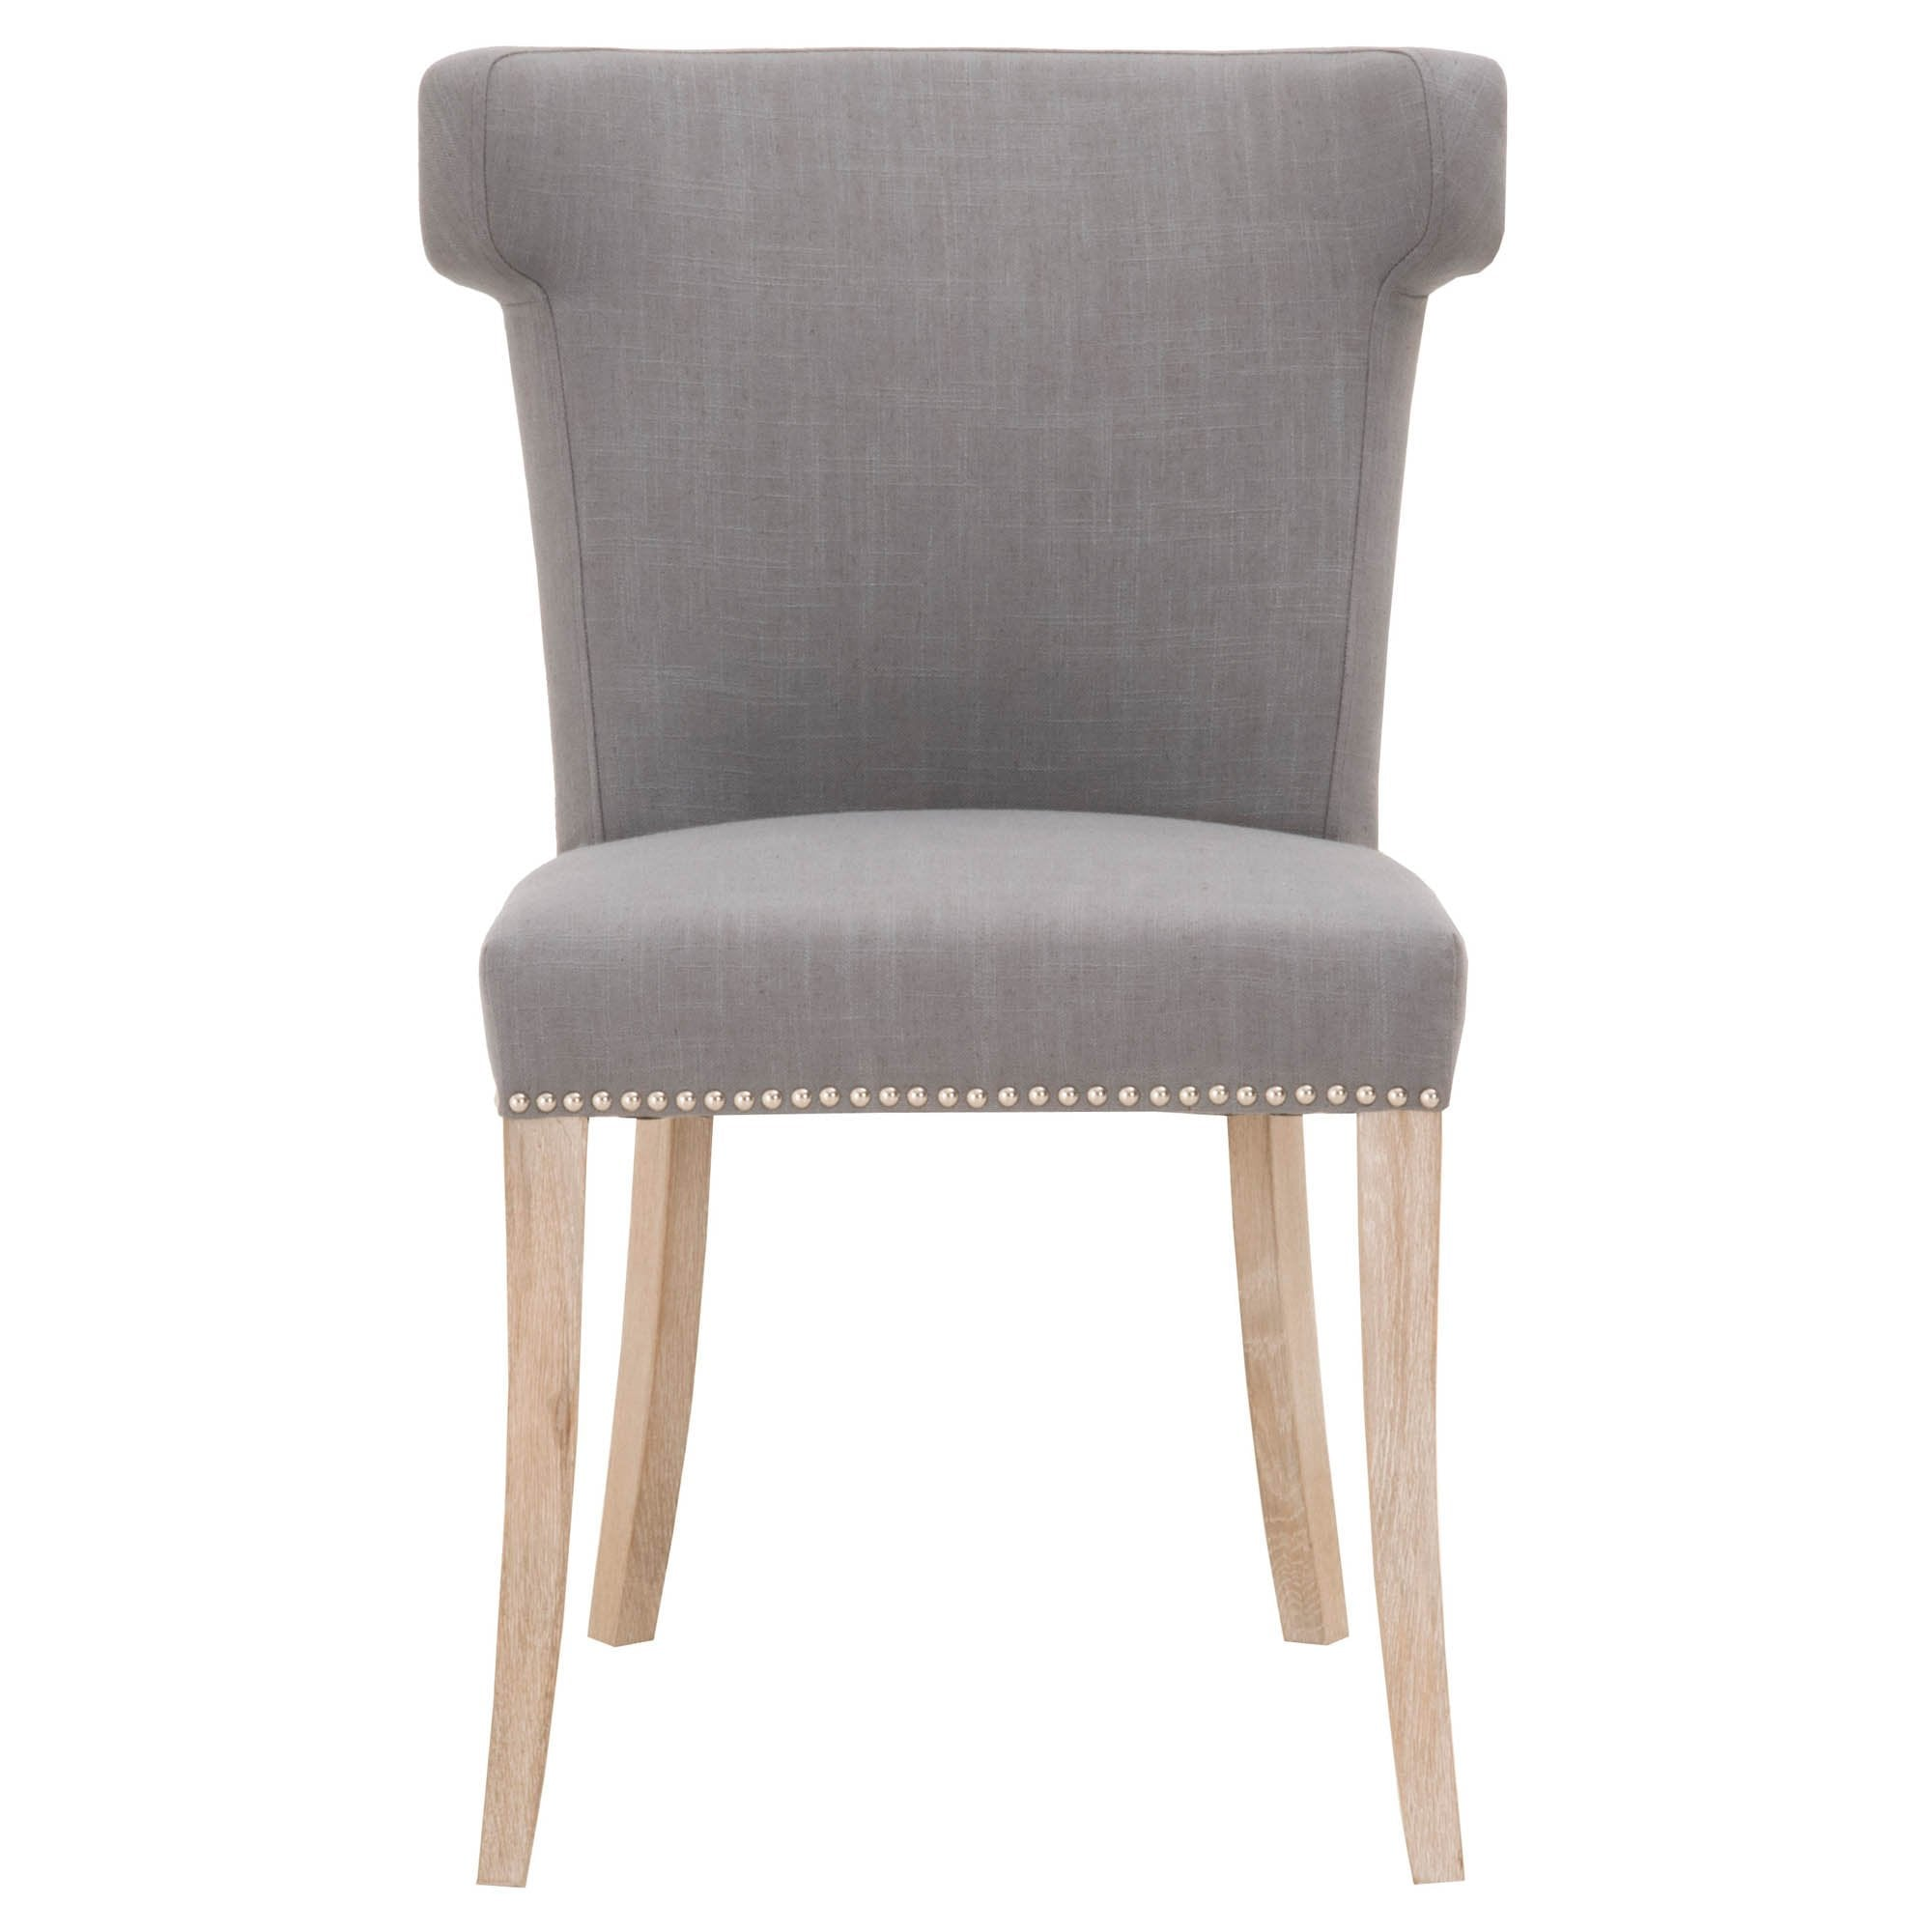 Celina Dining Chair in Natural Gray